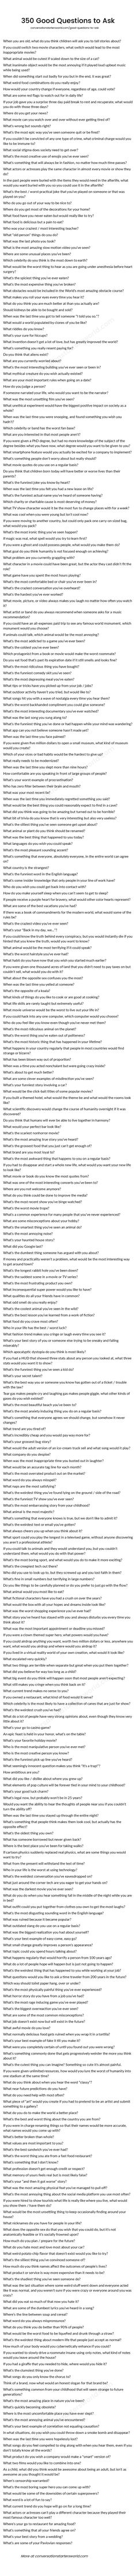 A ridiculously long list of good questions to ask!